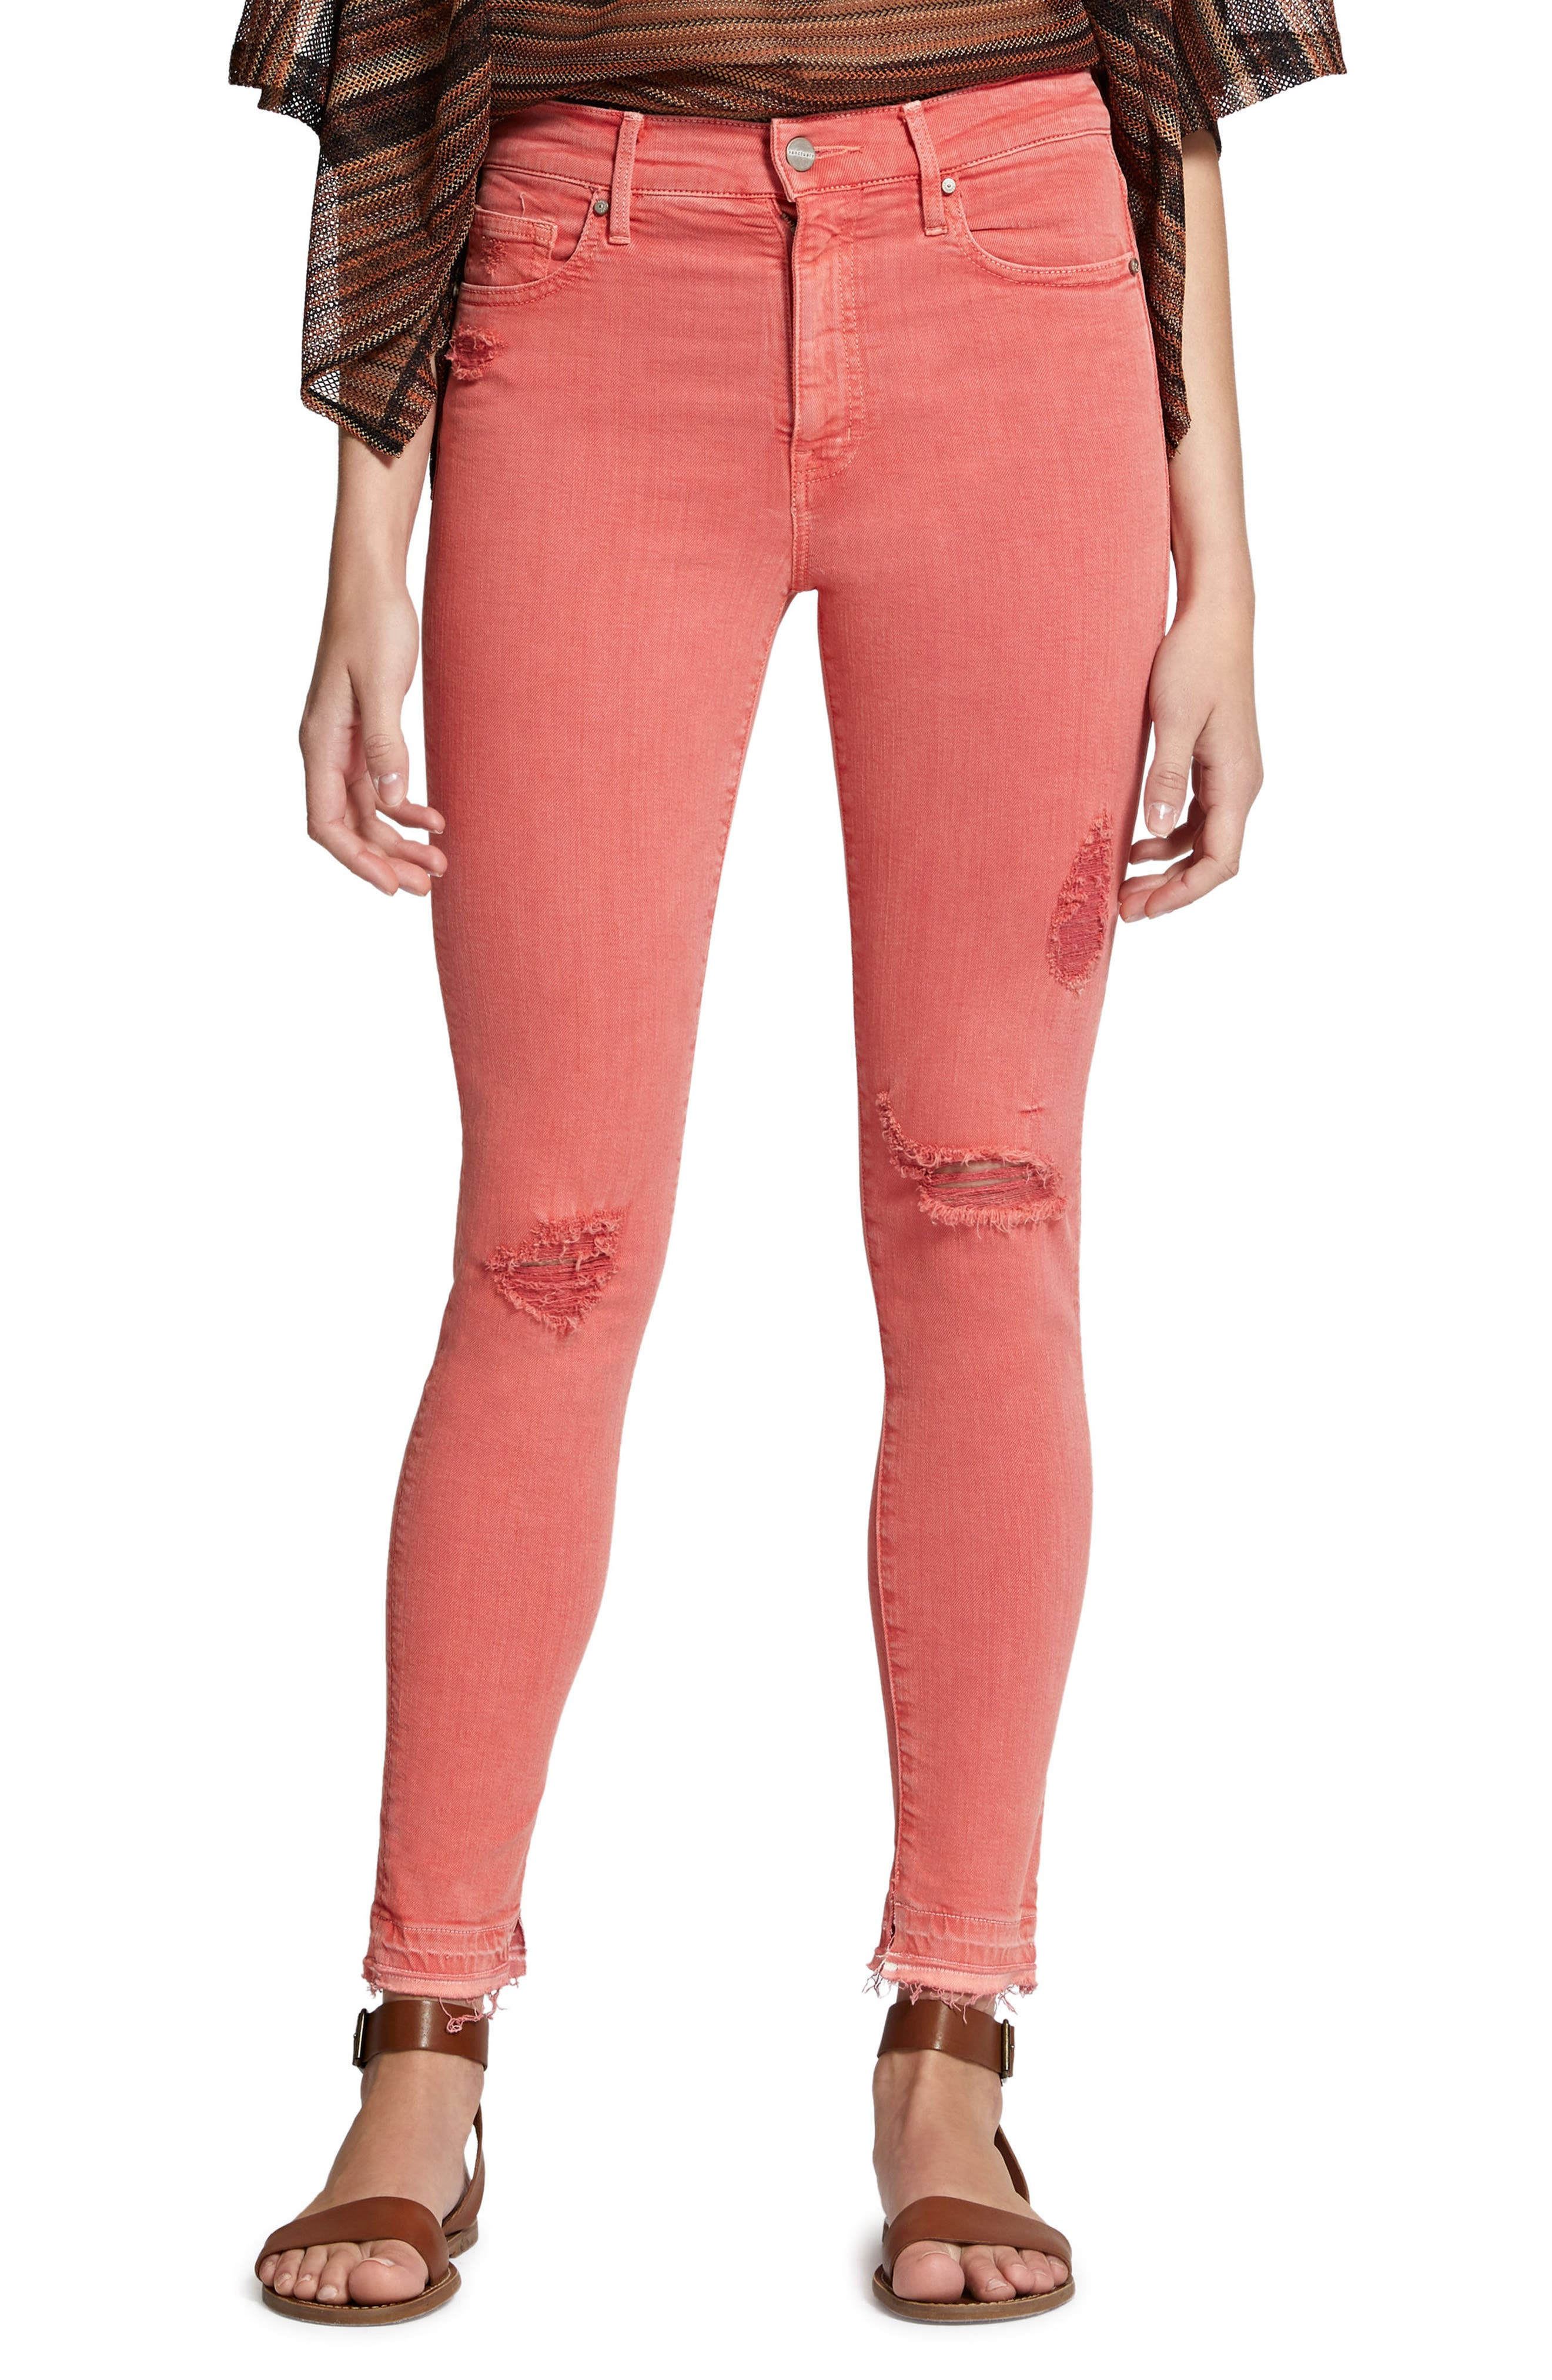 Robbie High Waist Ankle Jeans,                             Main thumbnail 1, color,                             Chili Wash